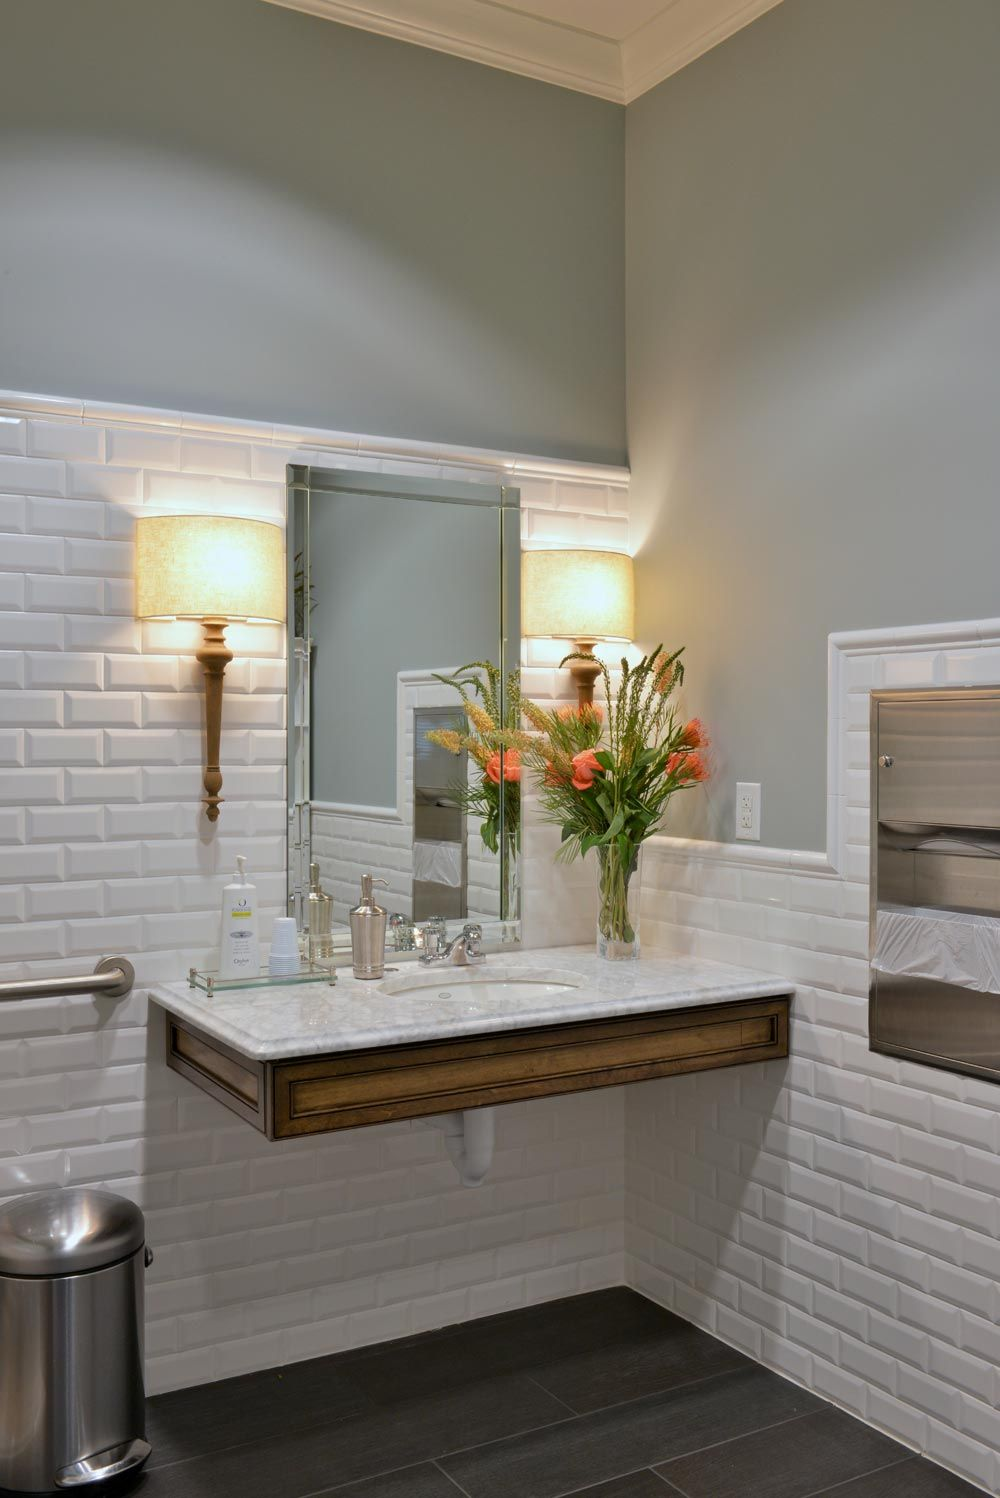 heather scott home and design is a retail boutique and interior rh ar pinterest com